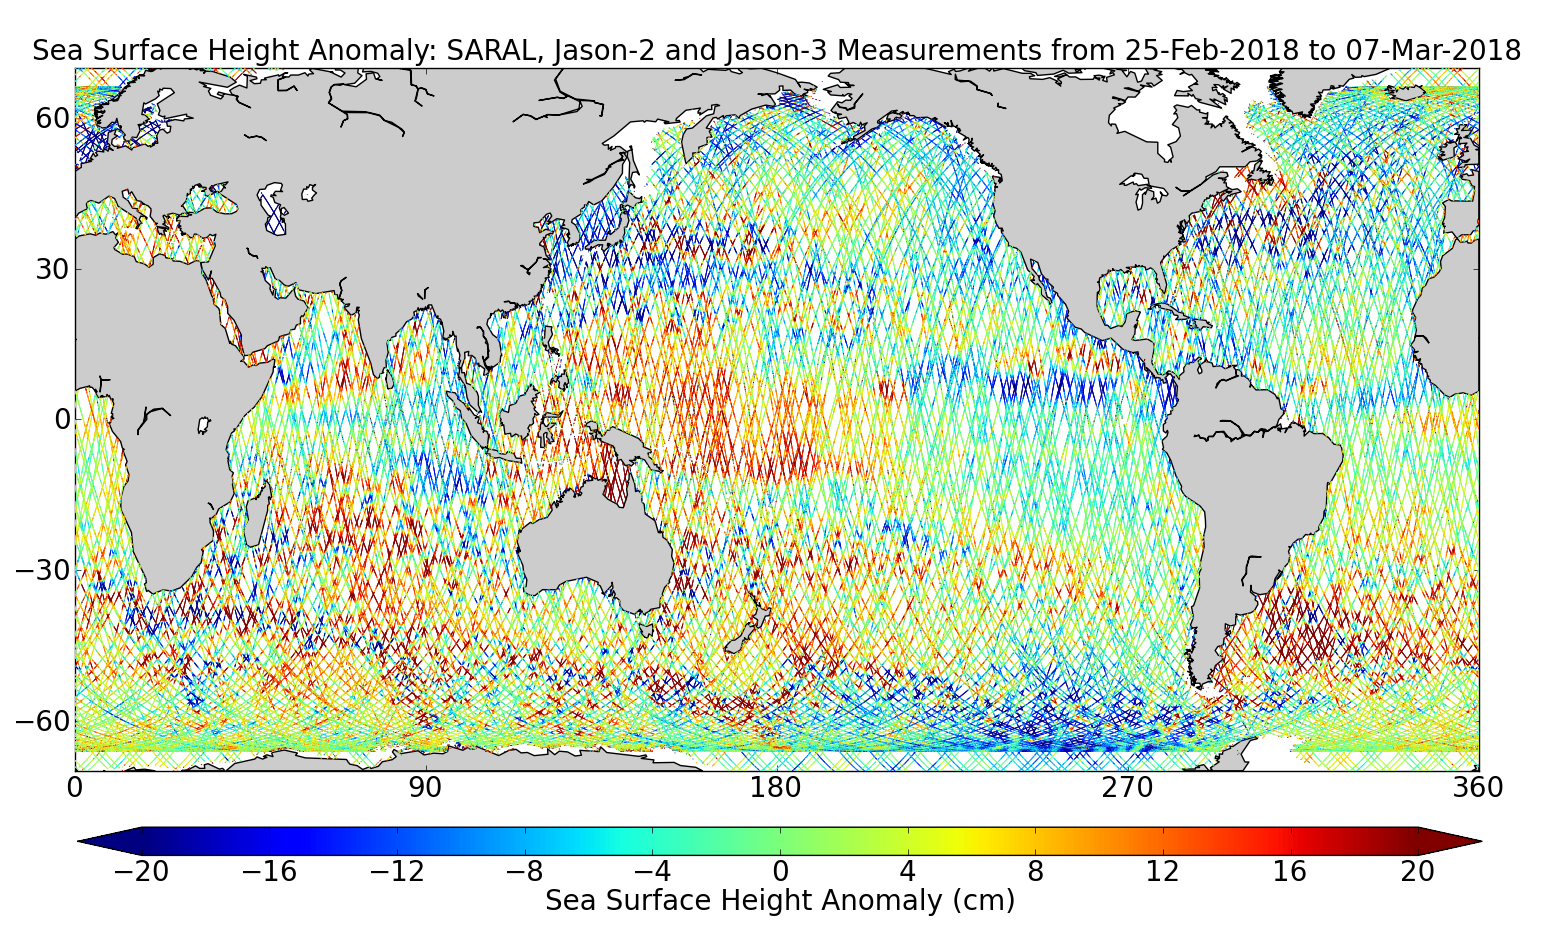 Sea Surface Height Anomaly: SARAL, Jason-2 and Jason-3 Measurements from 25-Feb-2018 to 07-Mar-2018